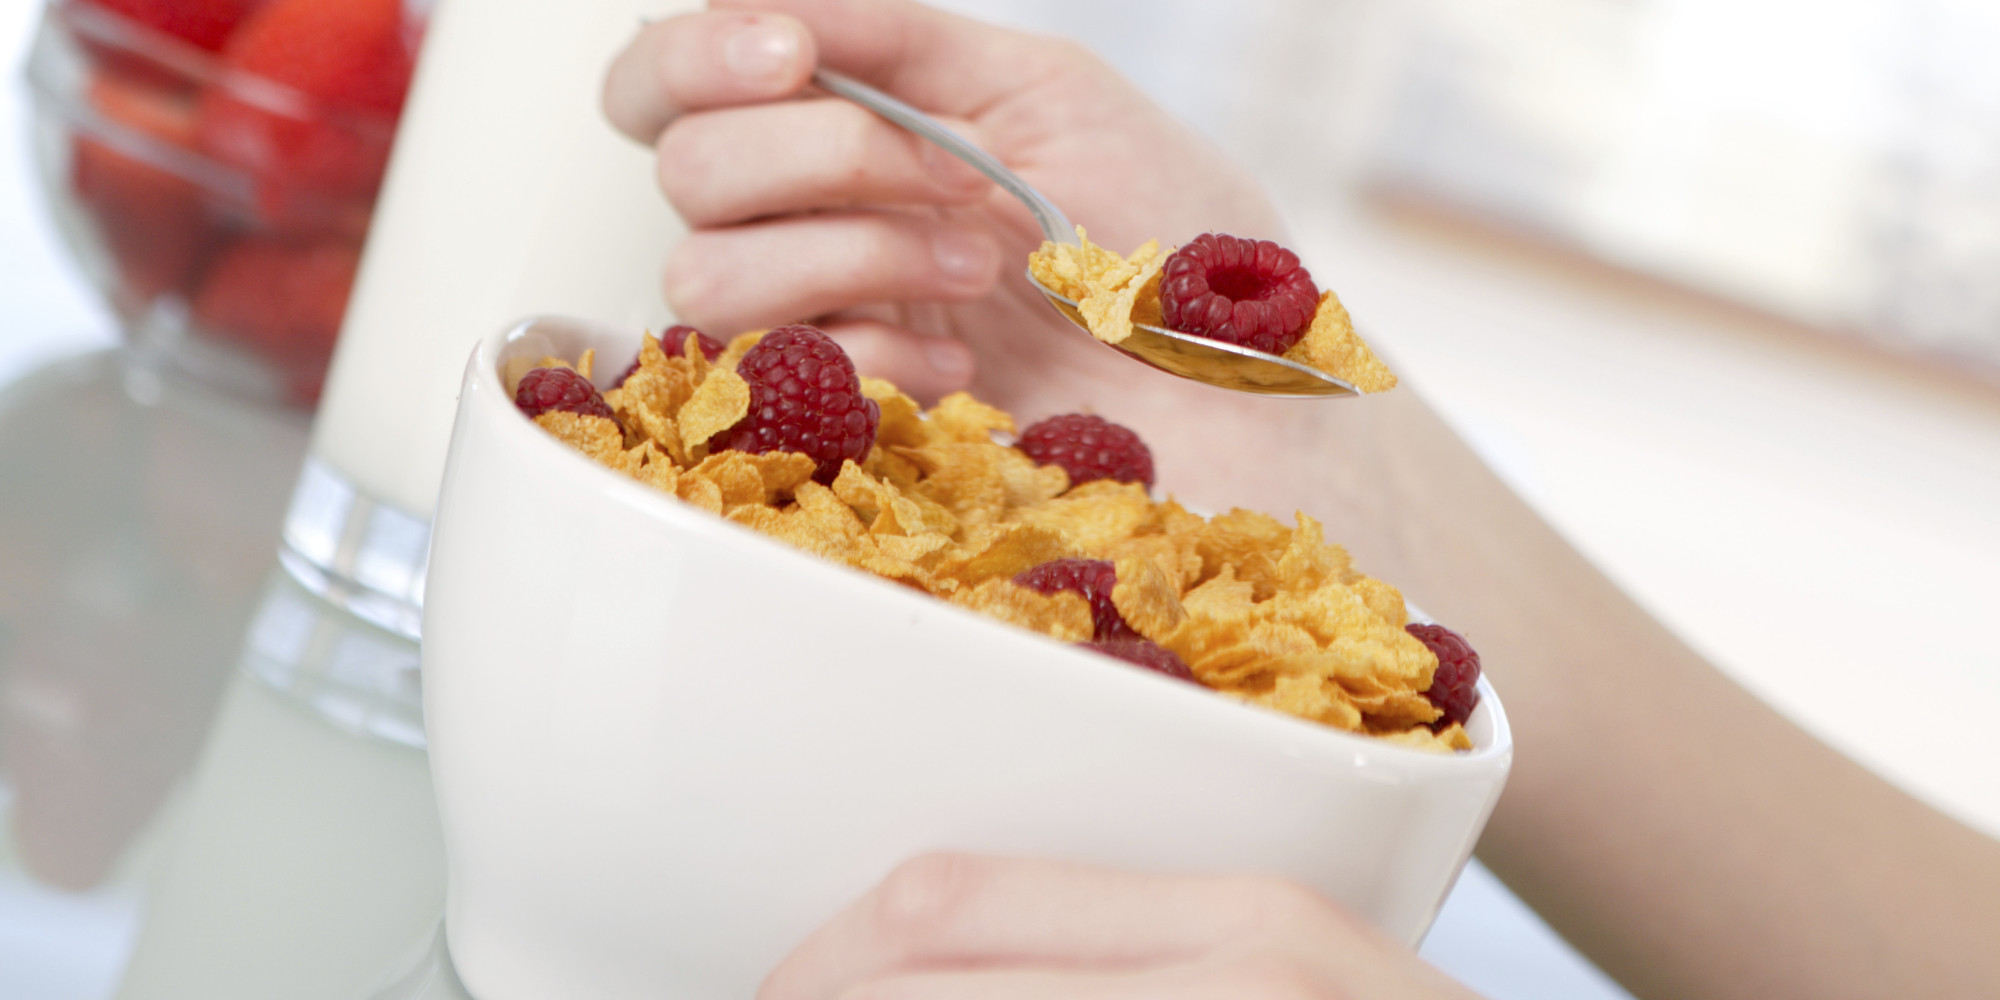 Teens Who Skip Breakfast May Face Metabolic Syndrome Risk